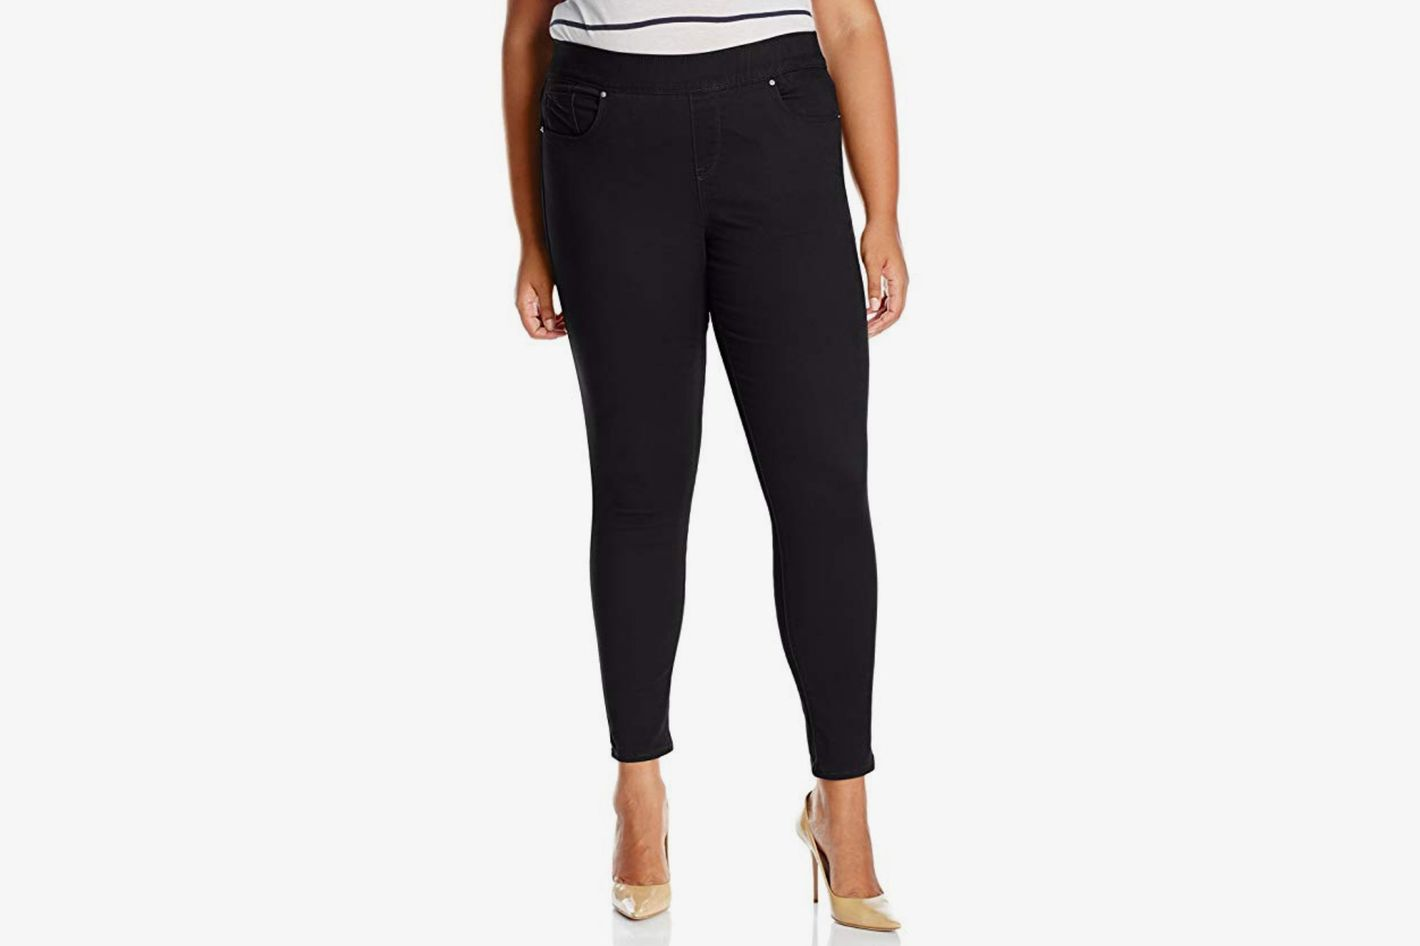 Levi's Perfectly Slimming Plus-Size Pull-on Skinny Jeans